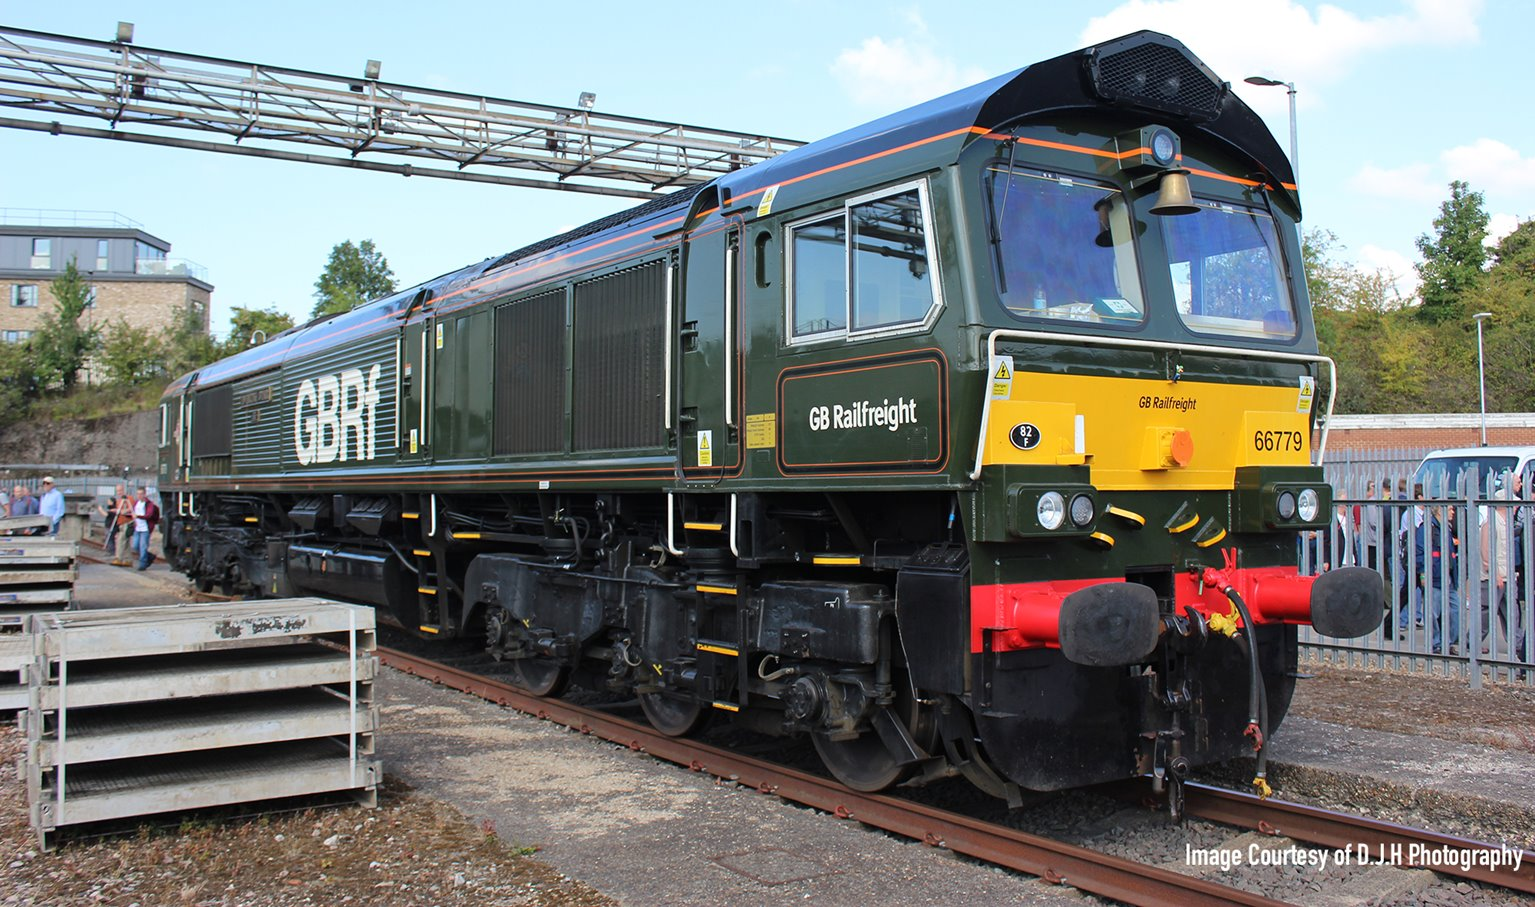 Class 66 779 'Evening Star' GBRF BR Green livery Diesel Locomotive DCC Sound Fitted